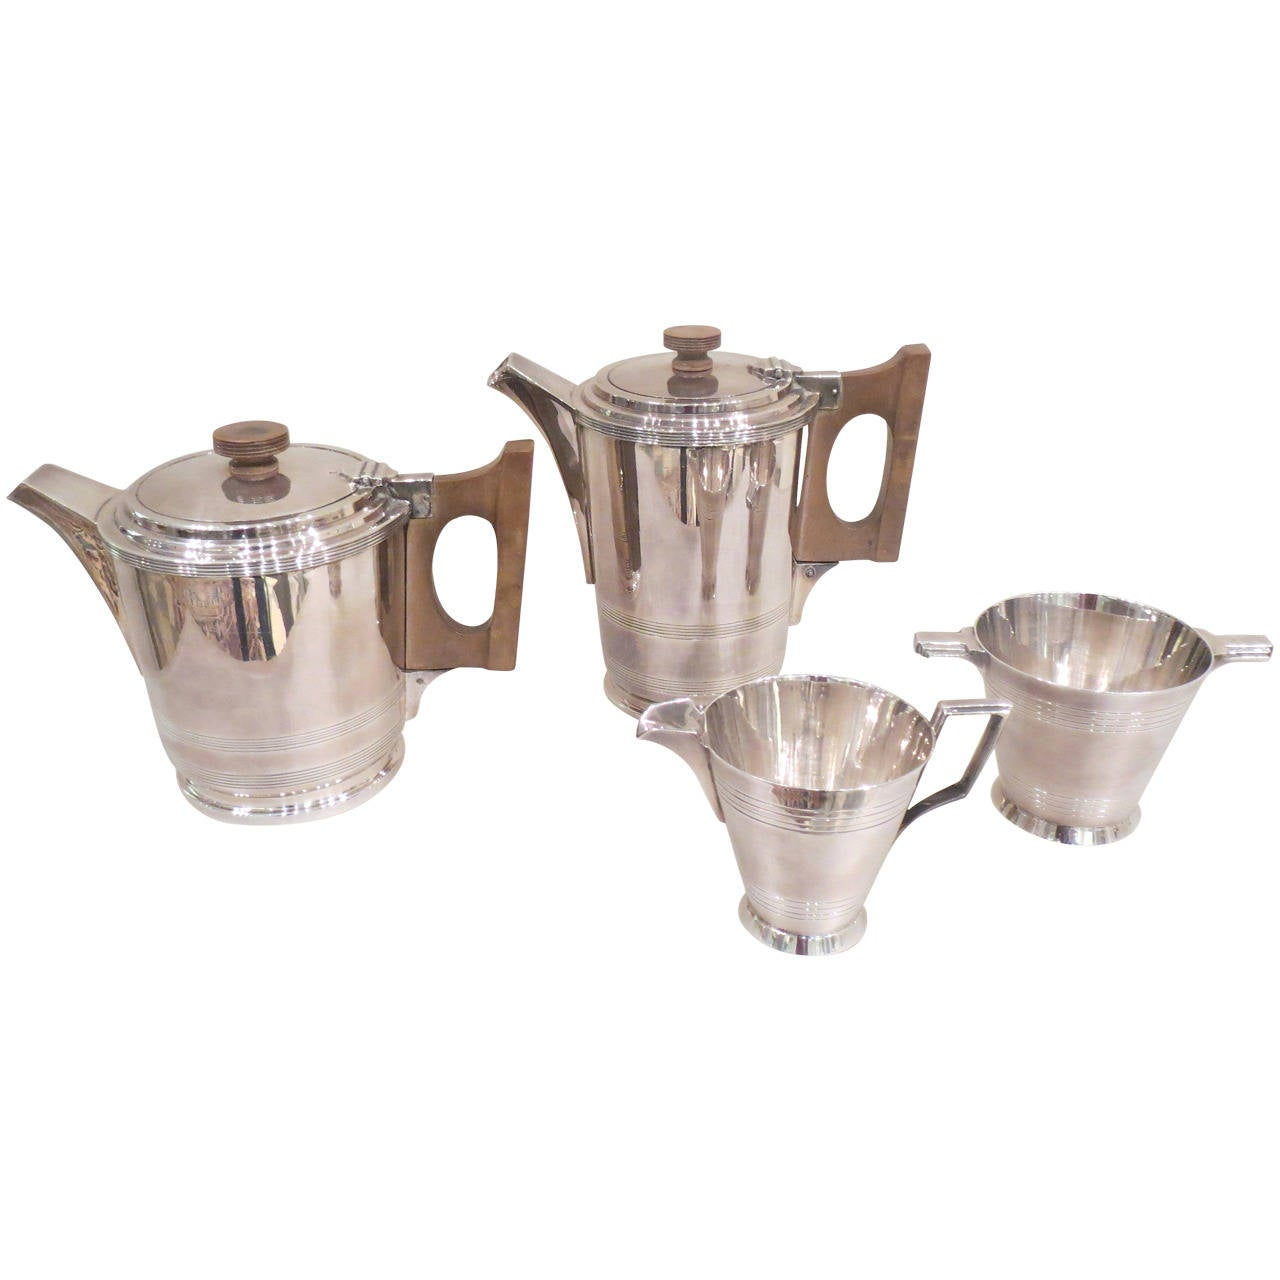 Four-Piece Art Deco Silver Plate Tea and Coffee Service by Walker & Hall For Sale